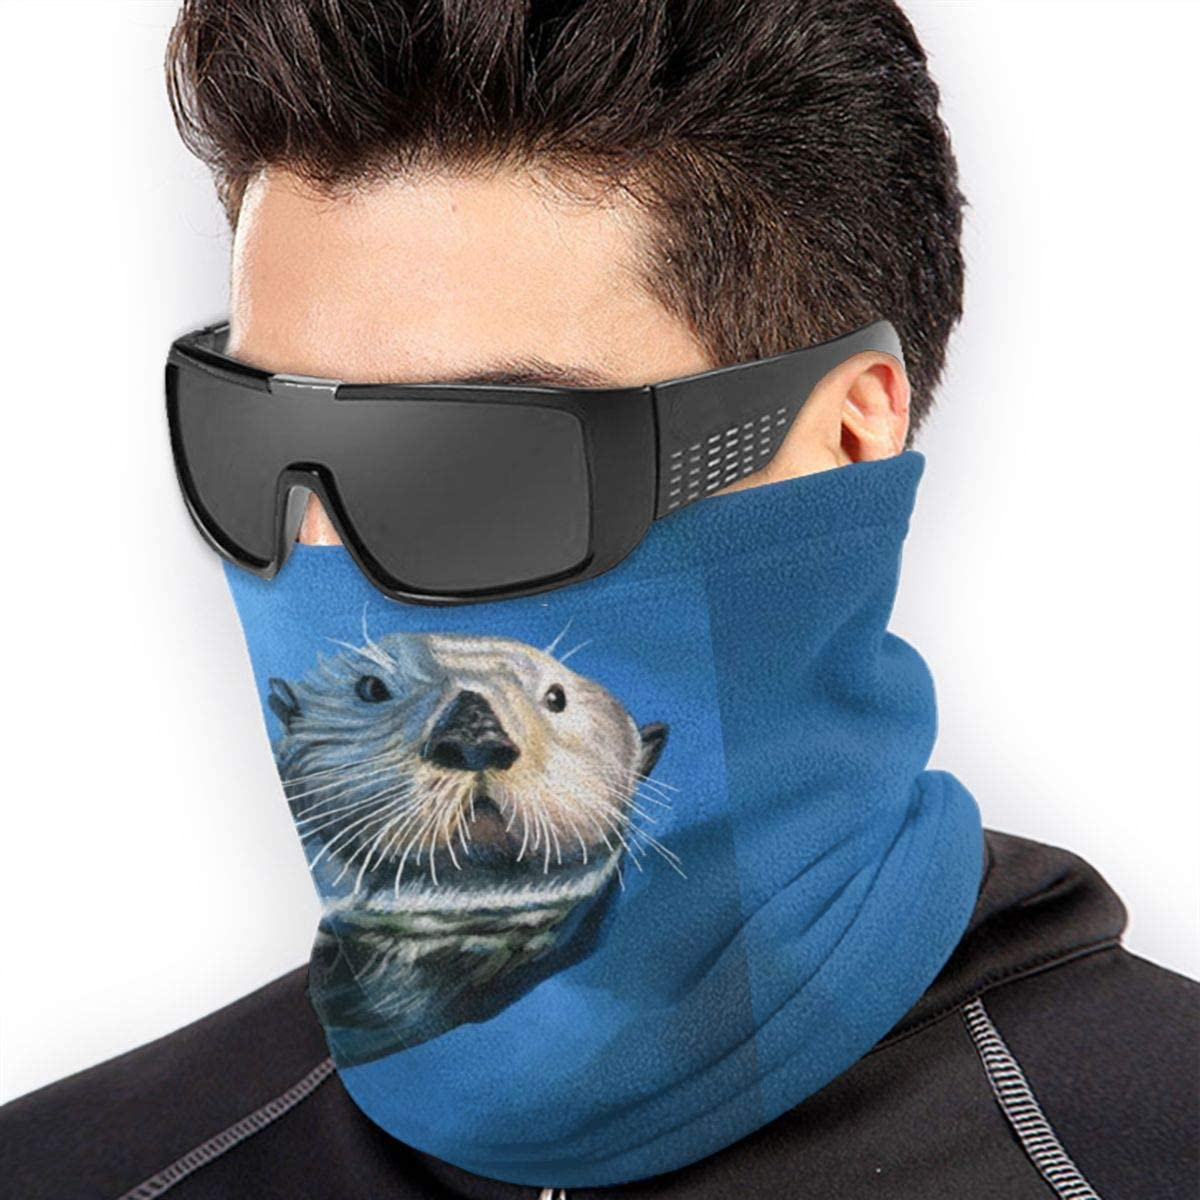 uytrgh Sea Otter Scarf Neck Warmer Soft Microfiber Headwear Face Scarf Mask For Cold Weather Winter Outdoor Sports 11111